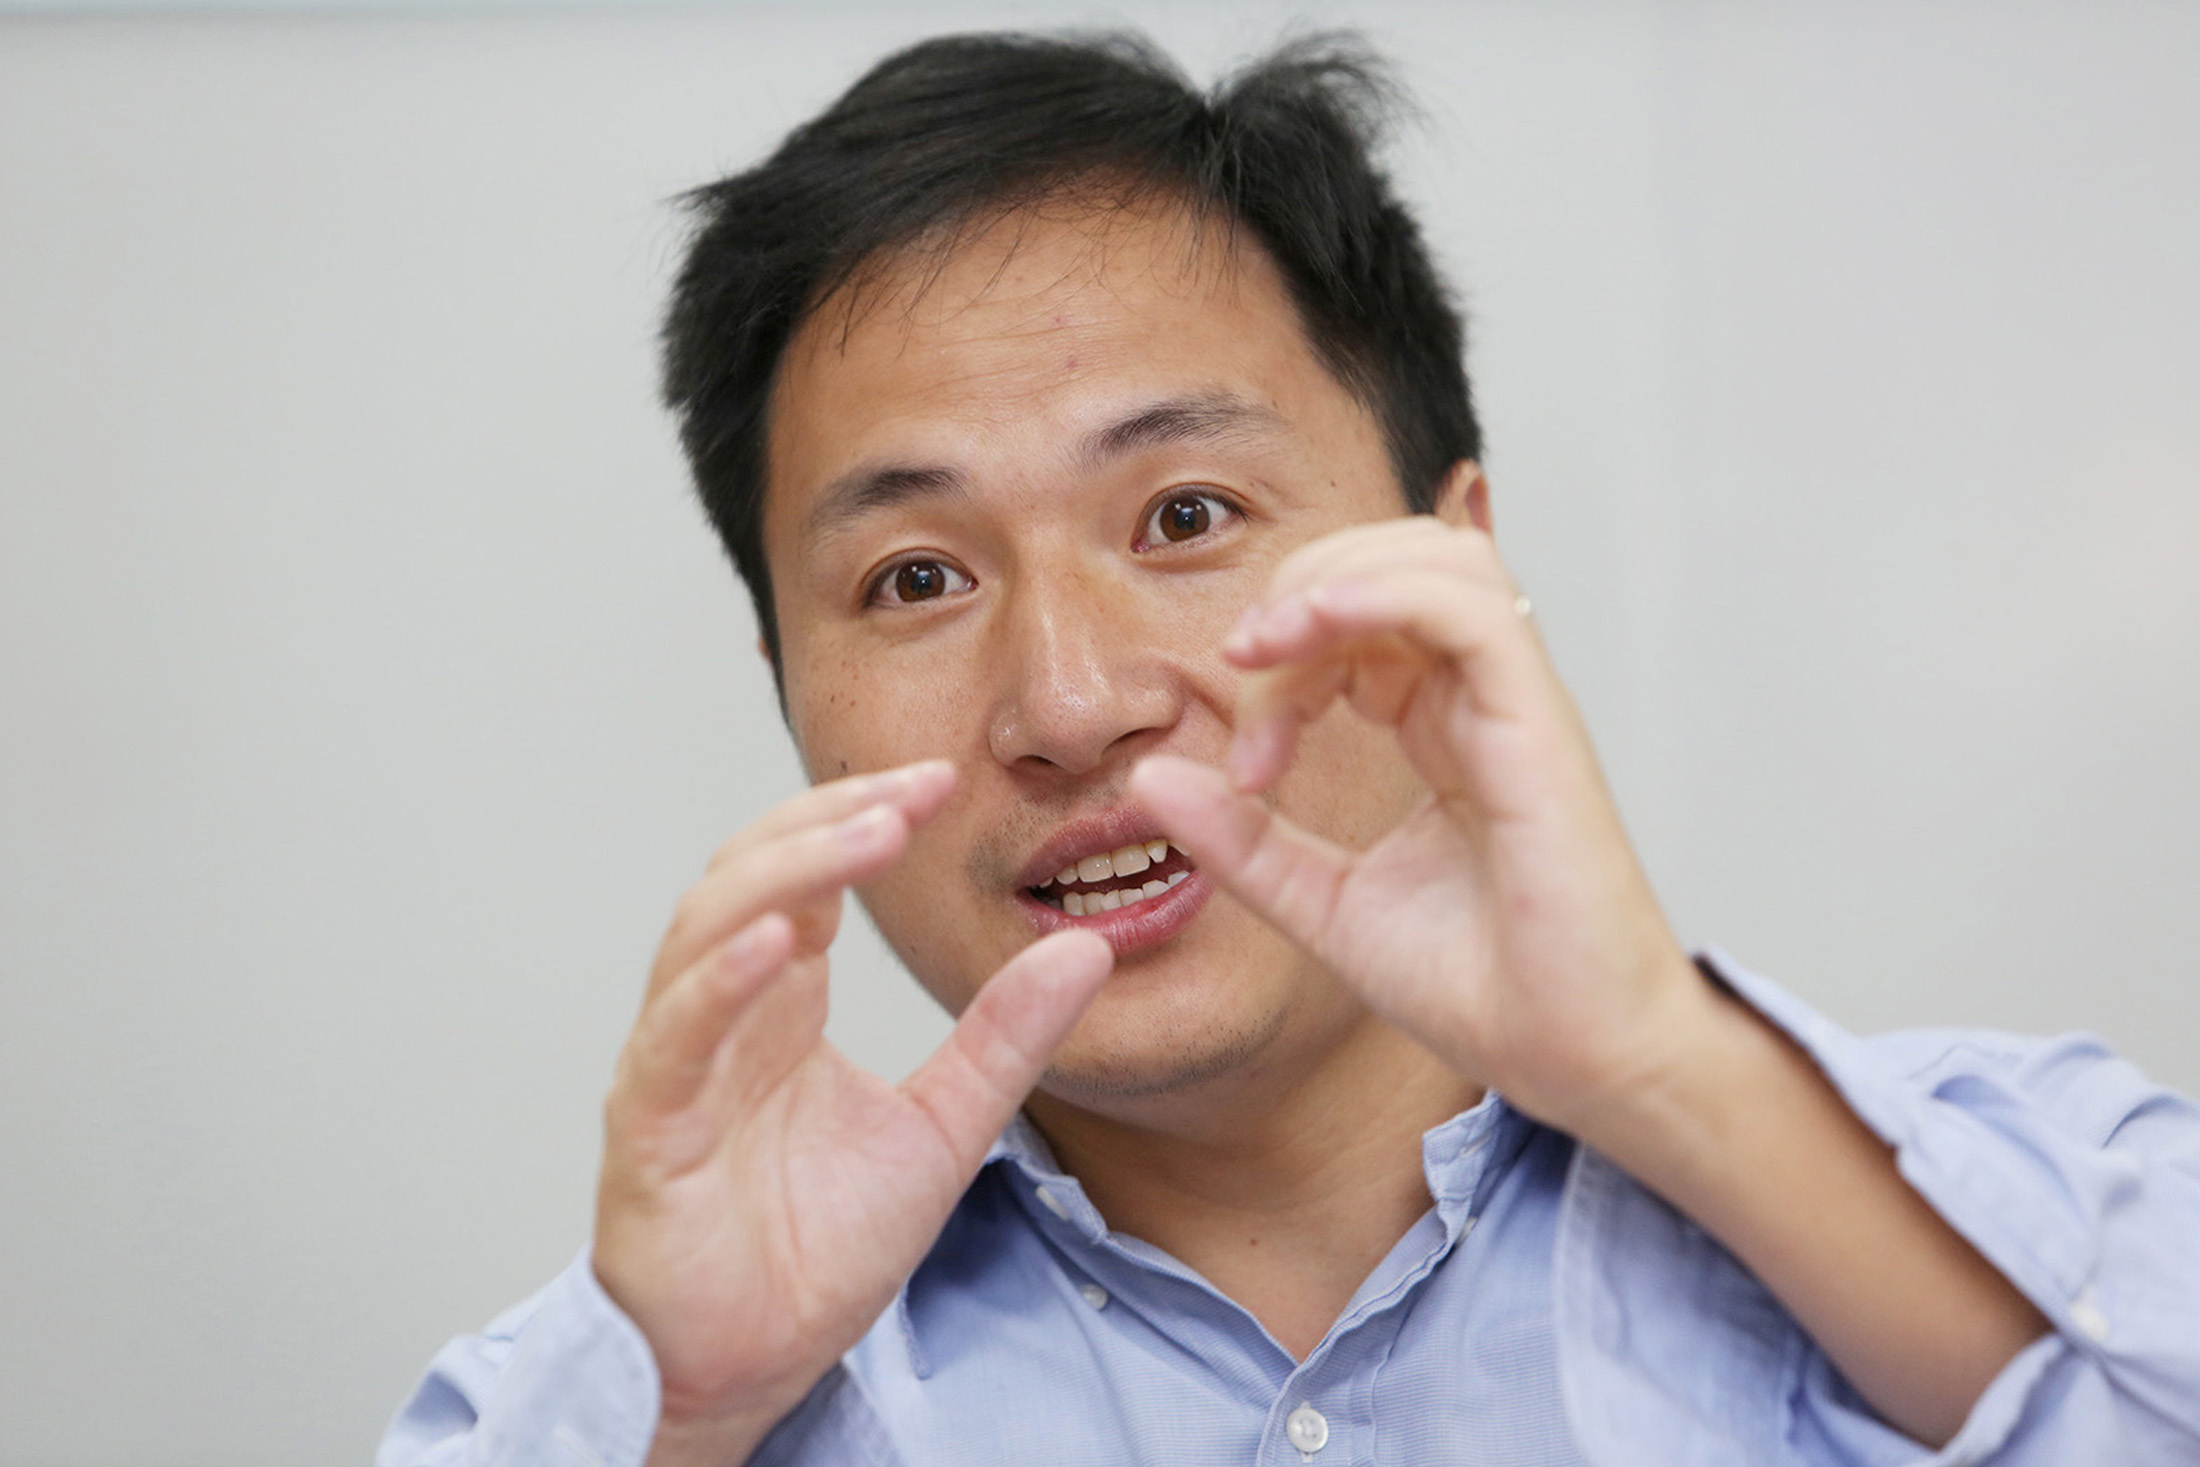 """He Jiankui usually goes by the nickname JK and is often called """"China's Frankenstein."""" (Reuters/China Stringer Network)"""